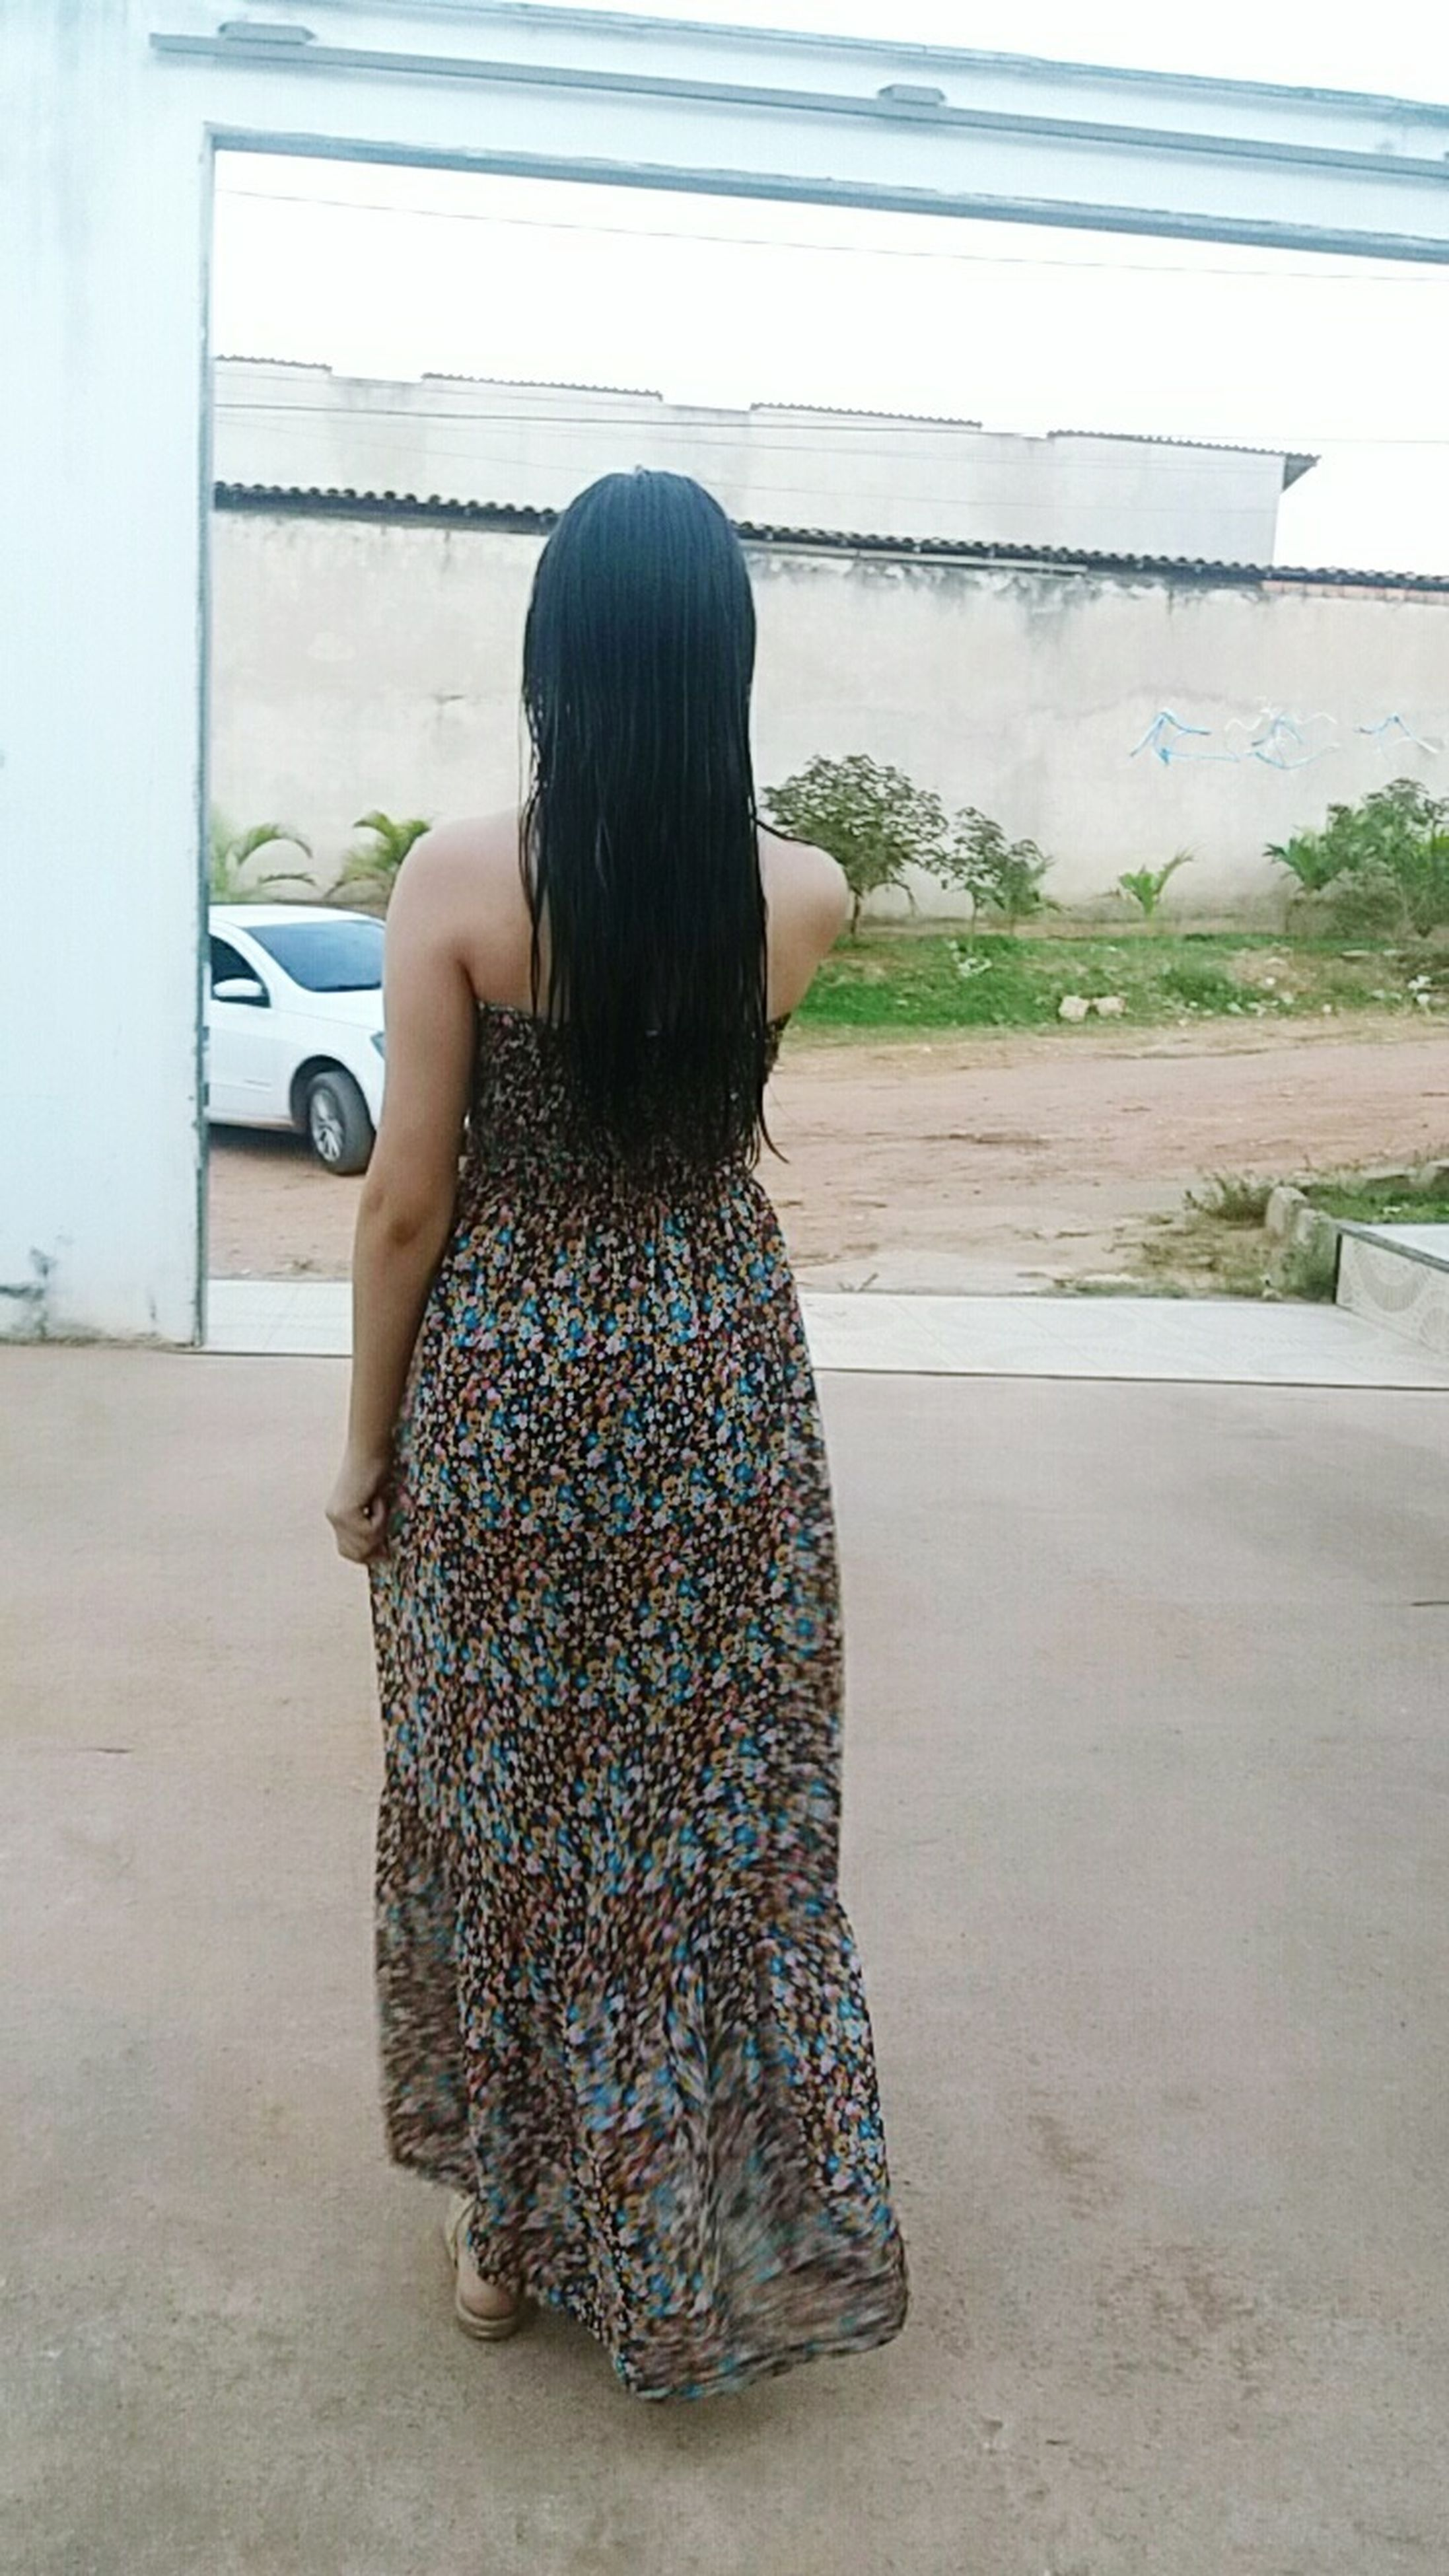 rear view, lifestyles, casual clothing, leisure activity, full length, standing, person, sitting, waist up, long hair, three quarter length, sky, day, childhood, relaxation, side view, transportation, outdoors